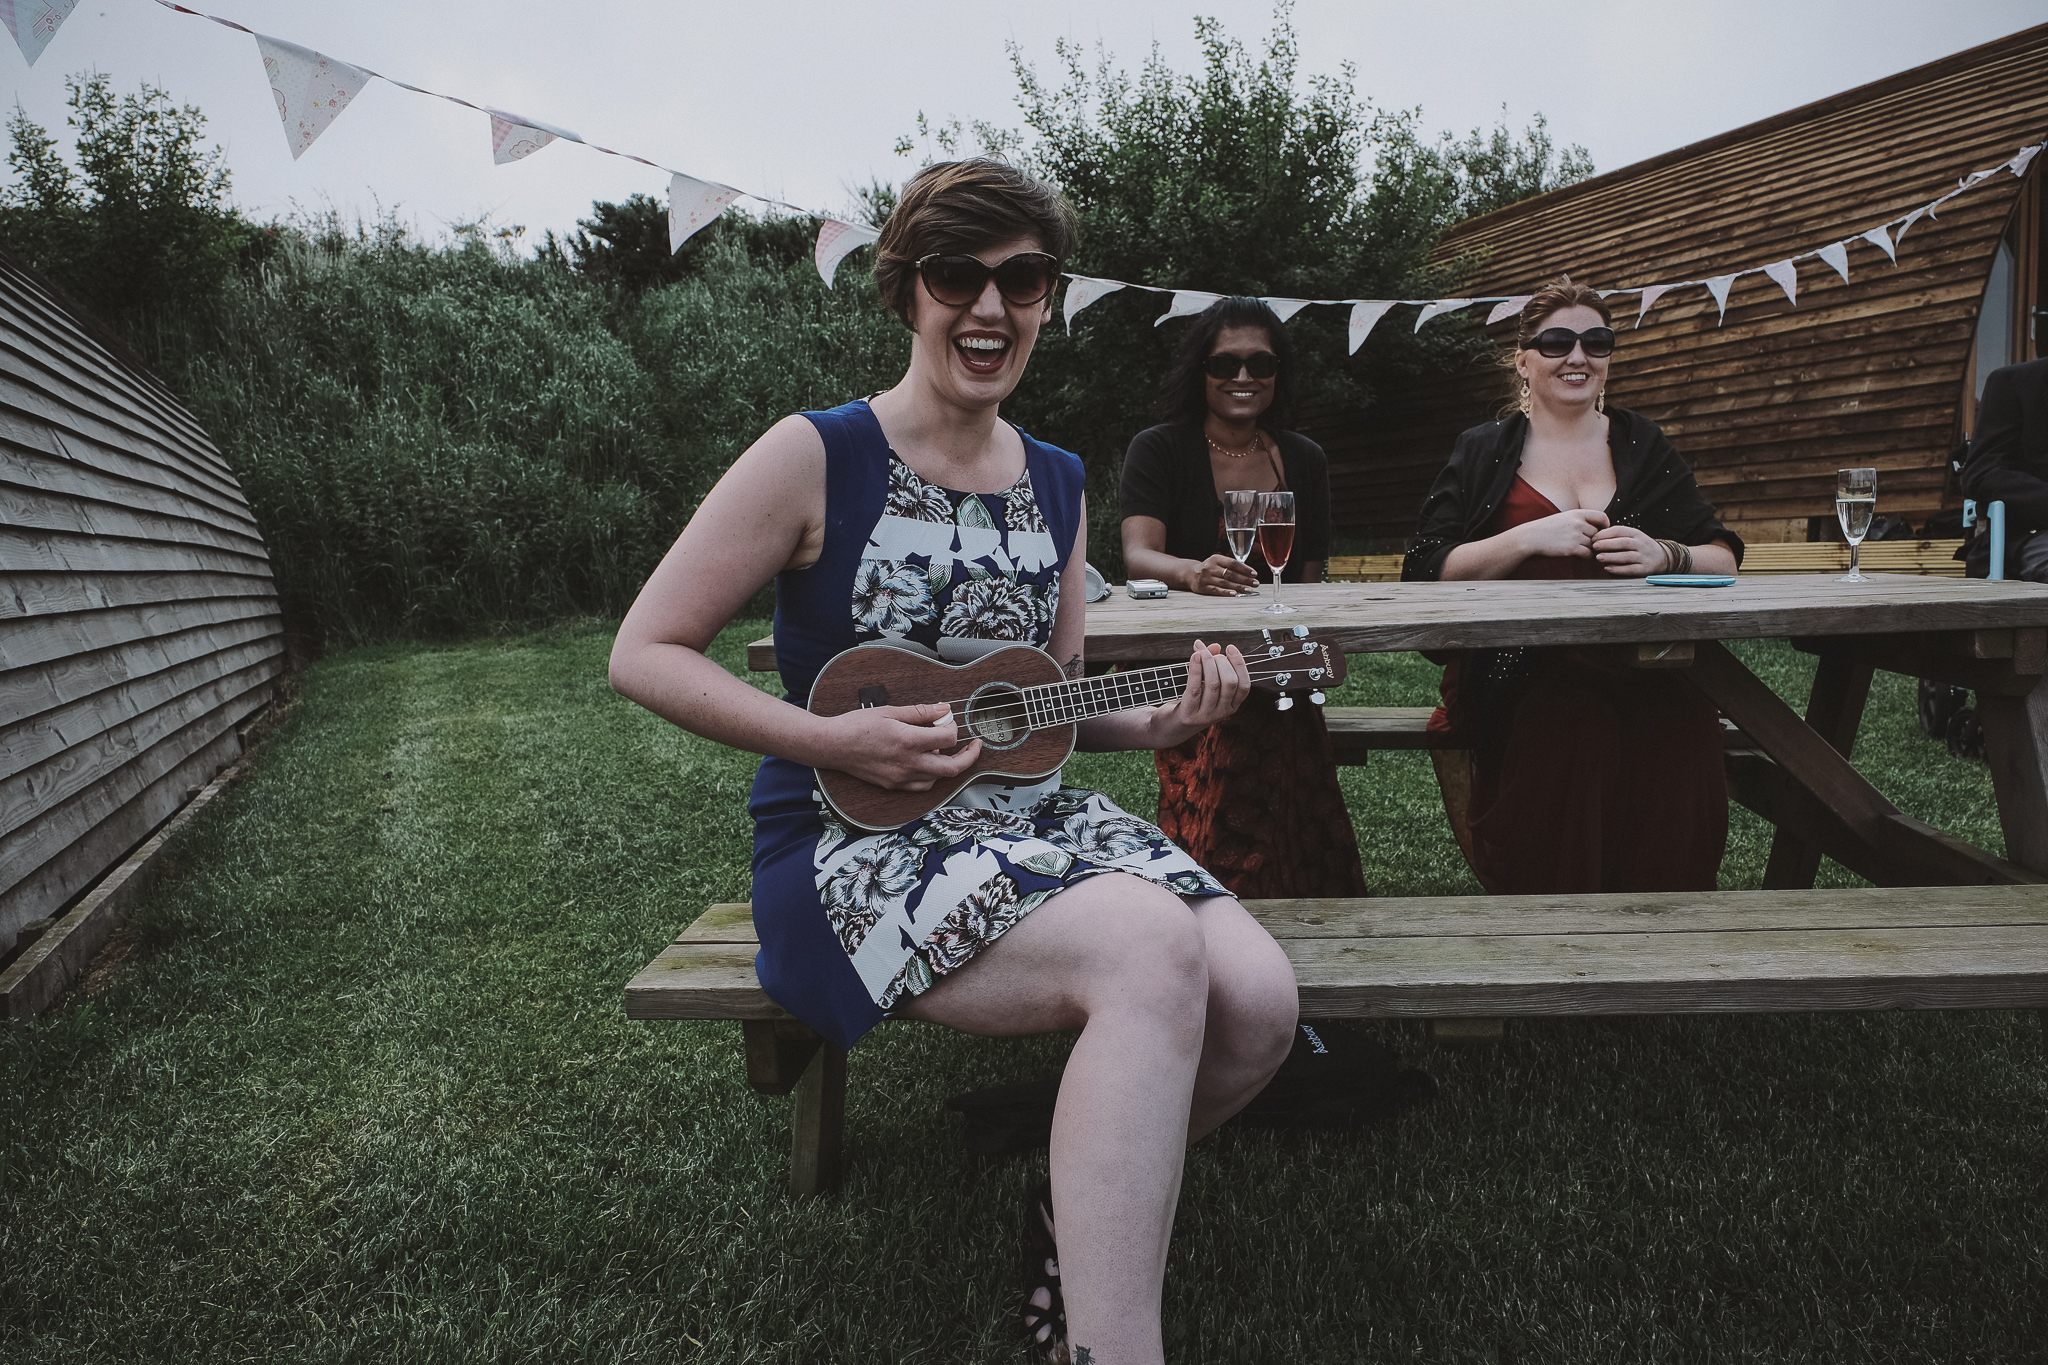 The brides entrance is accompanied by a sunglasses wearing ukulele player